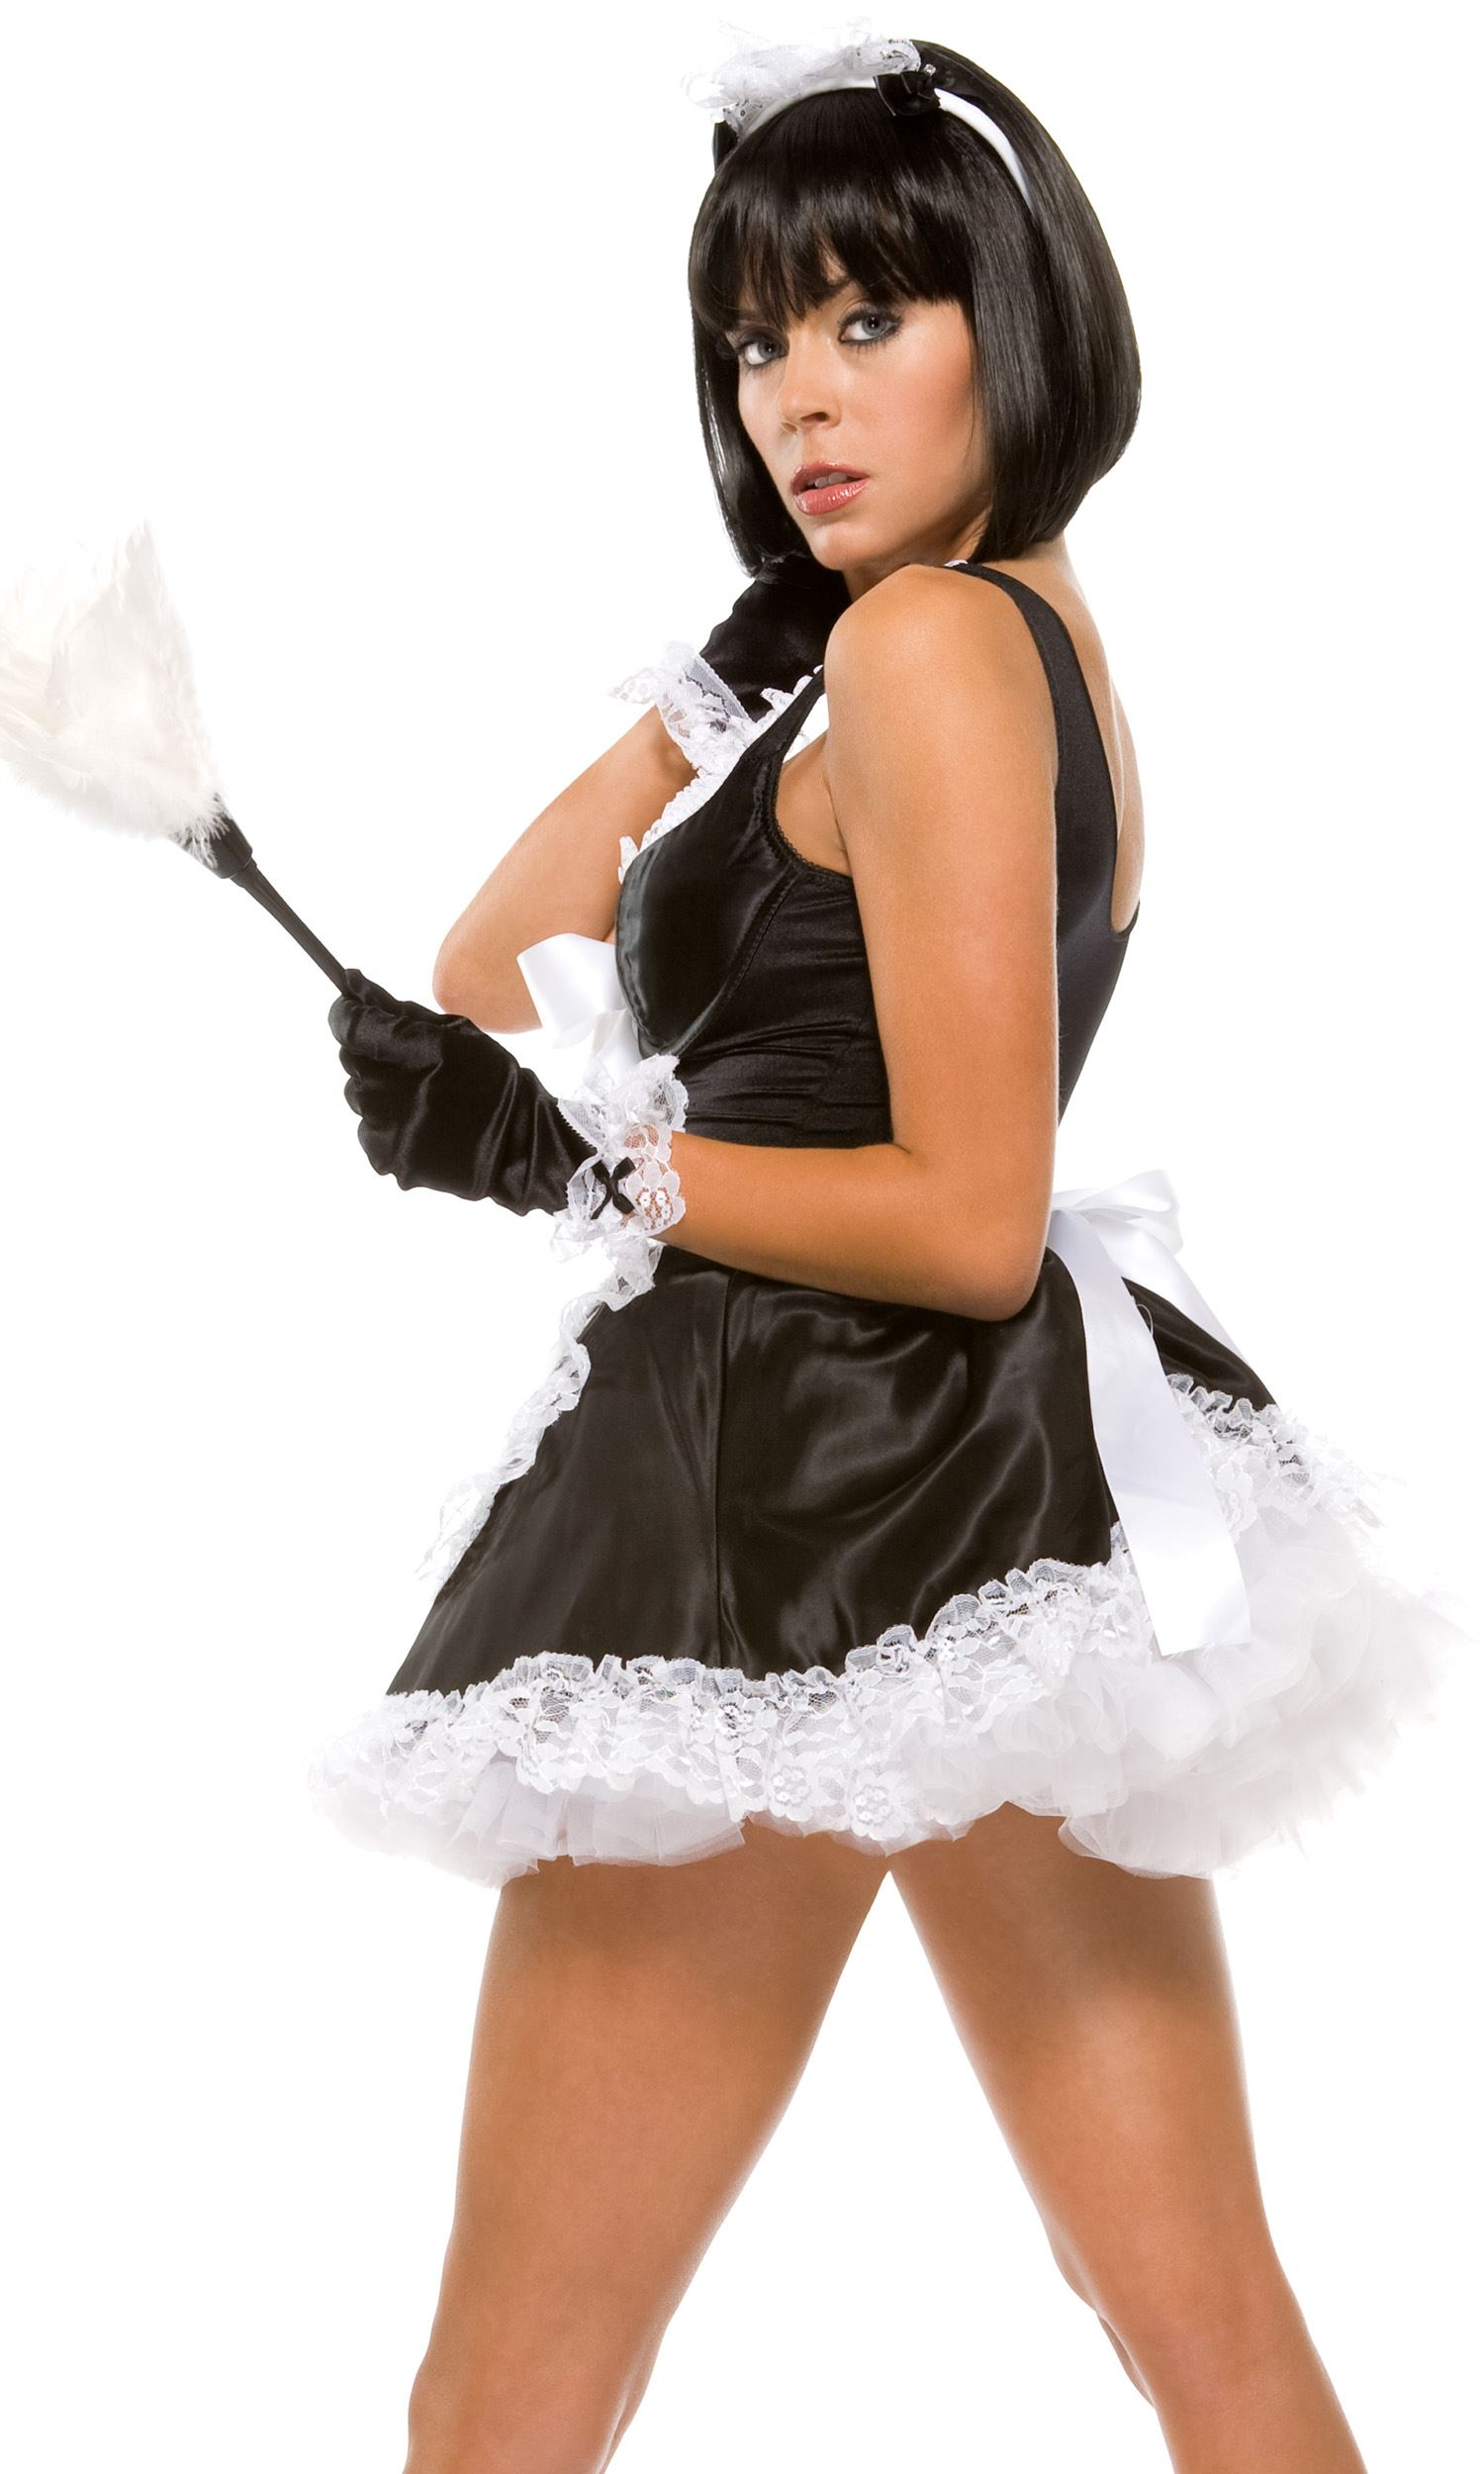 Adult domesticated delight french maid costume 5599 the adult domesticated delight french maid costume adult domesticated delight french maid costume solutioingenieria Gallery